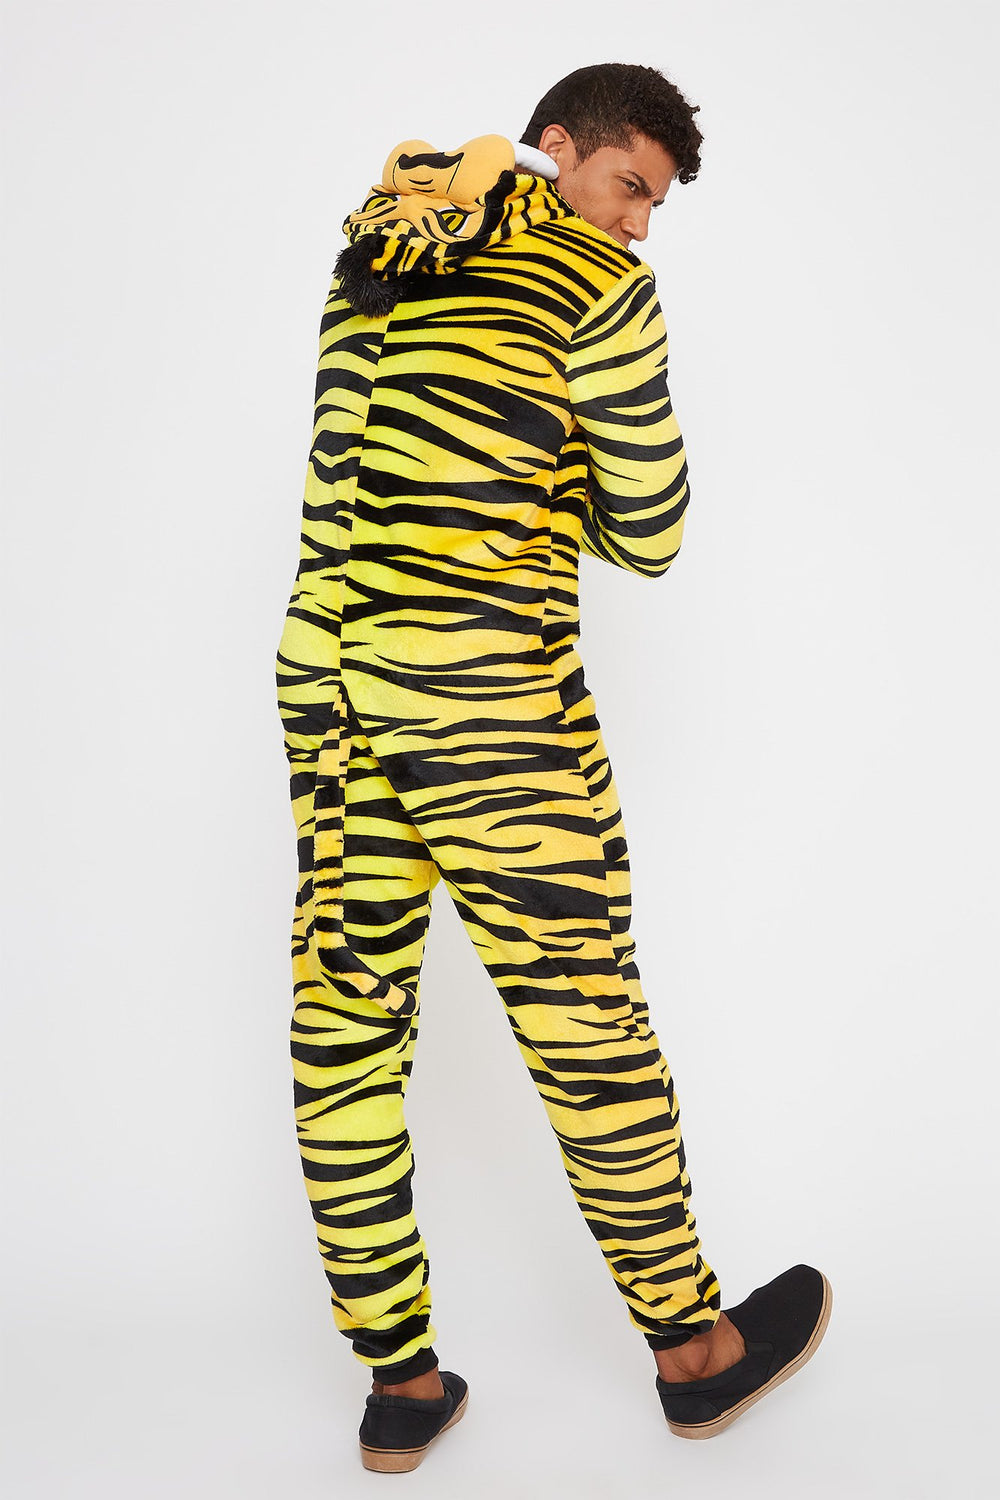 Adult Tiger Onesie Yellow